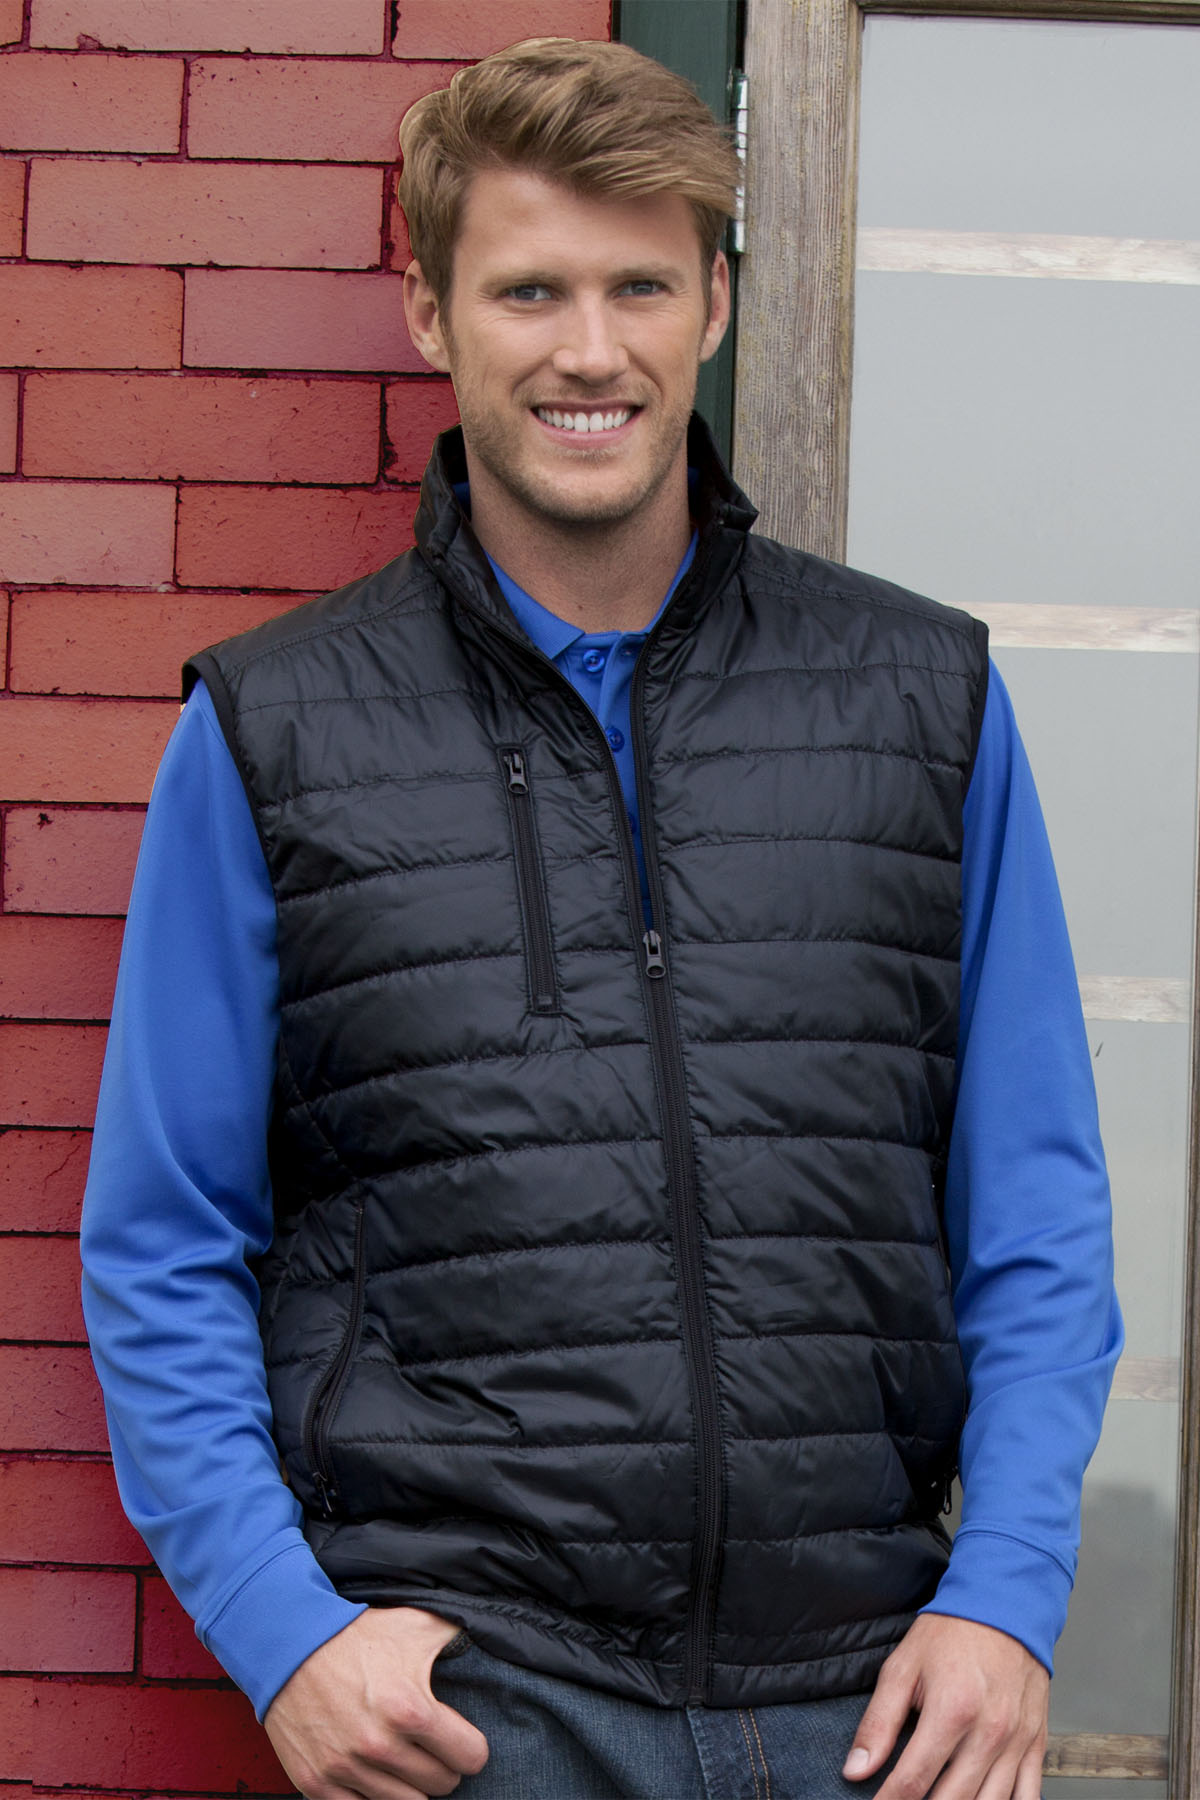 Vantage 7325 - Apex Compressible Quilted Vest